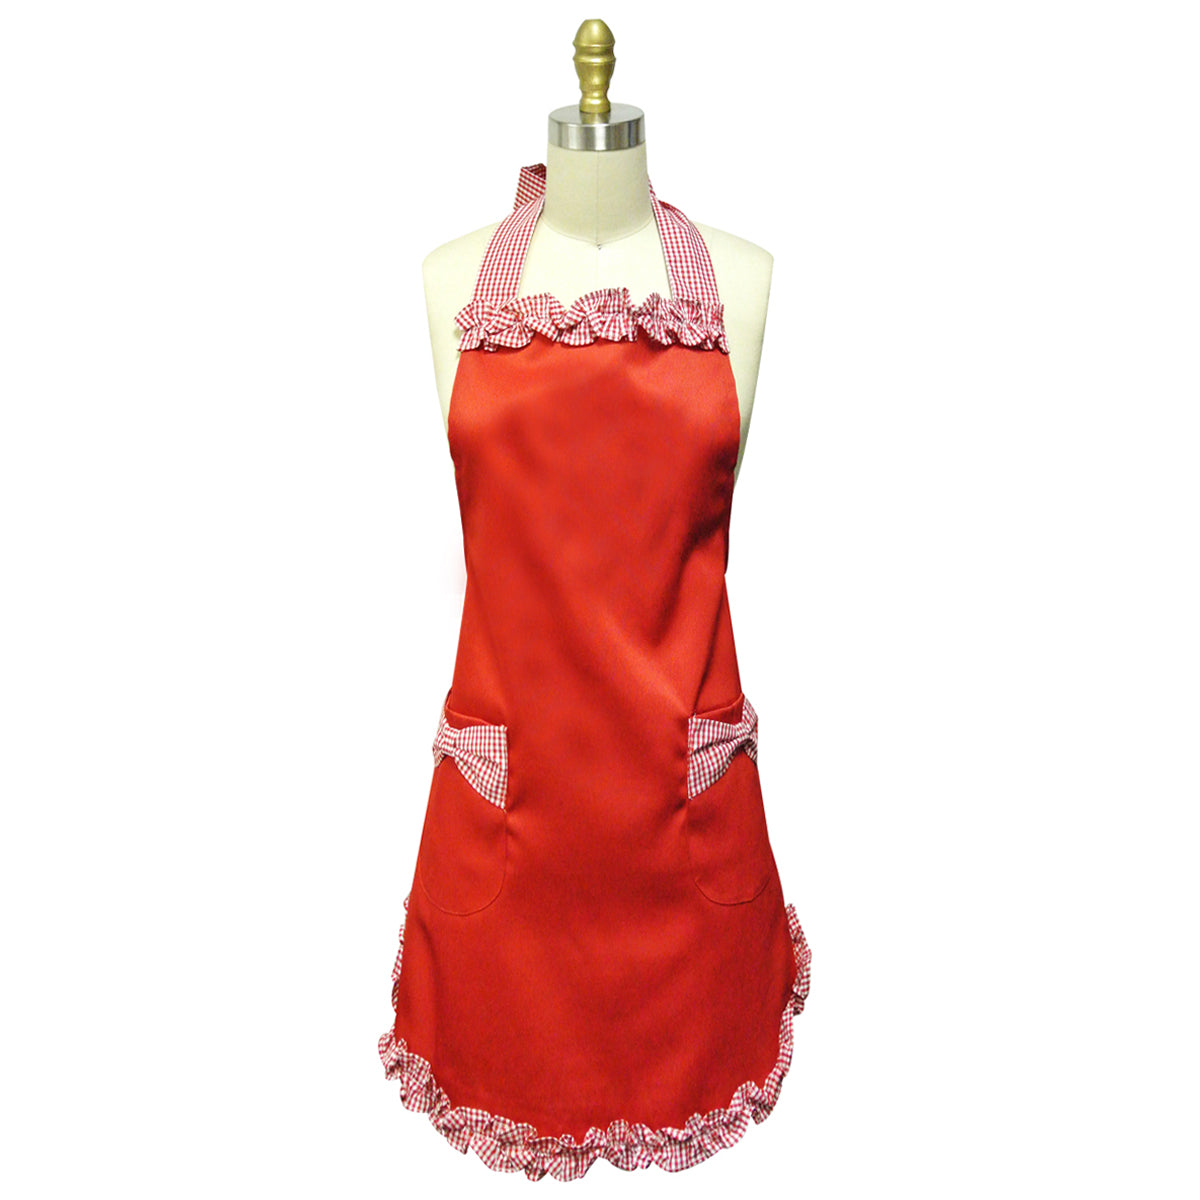 Kella Milla Ruffles Pin-up Apron